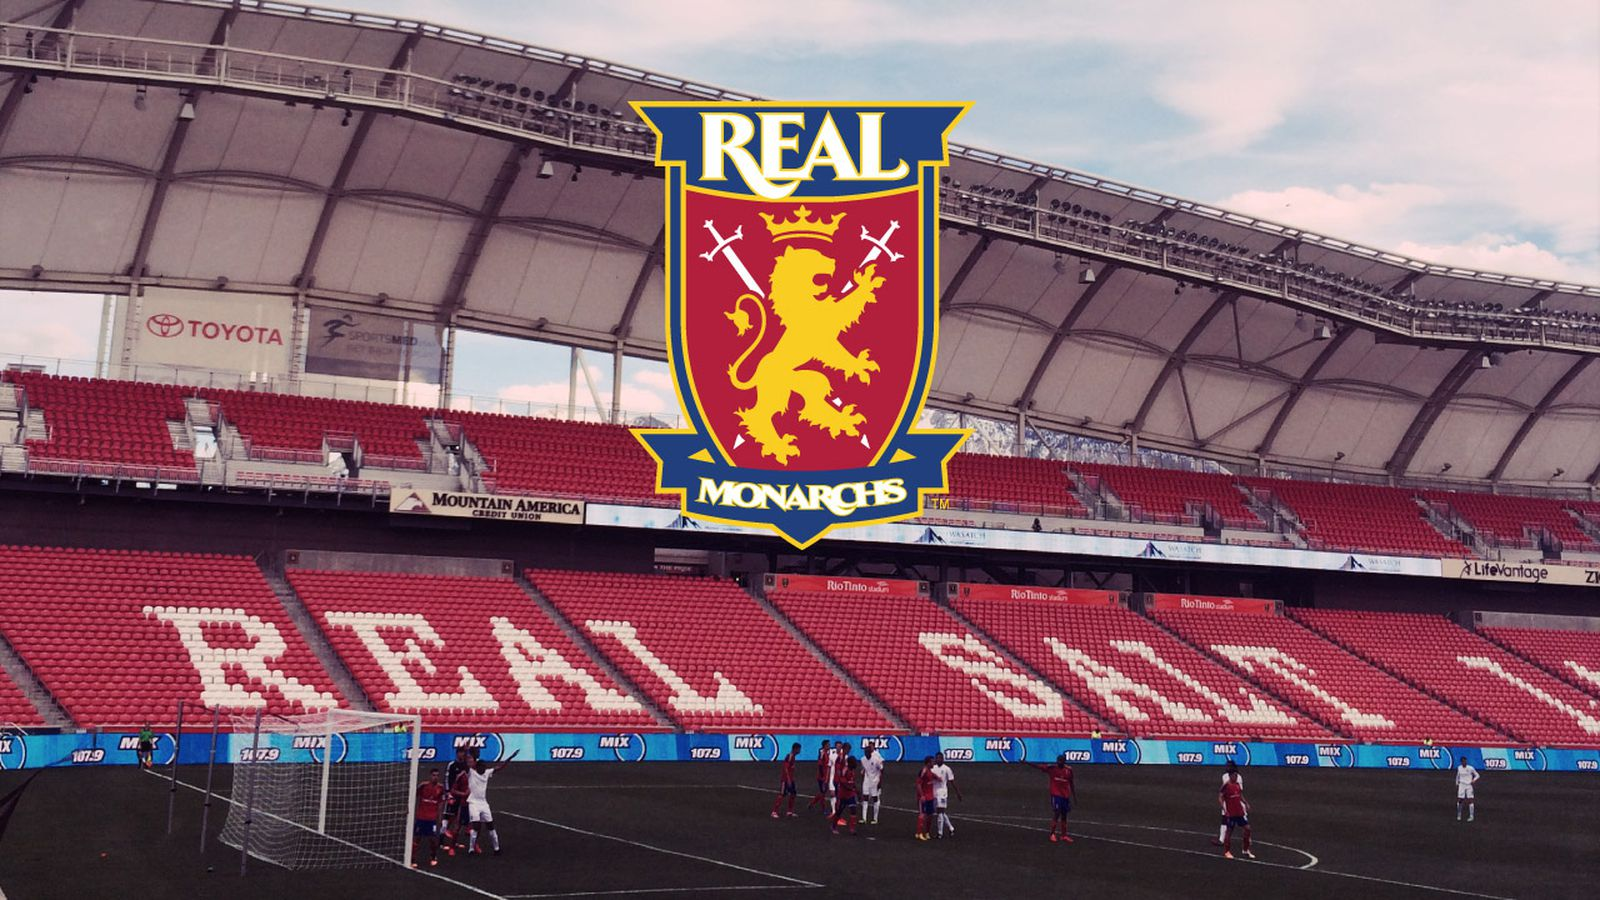 Realmonarchs6.0.0